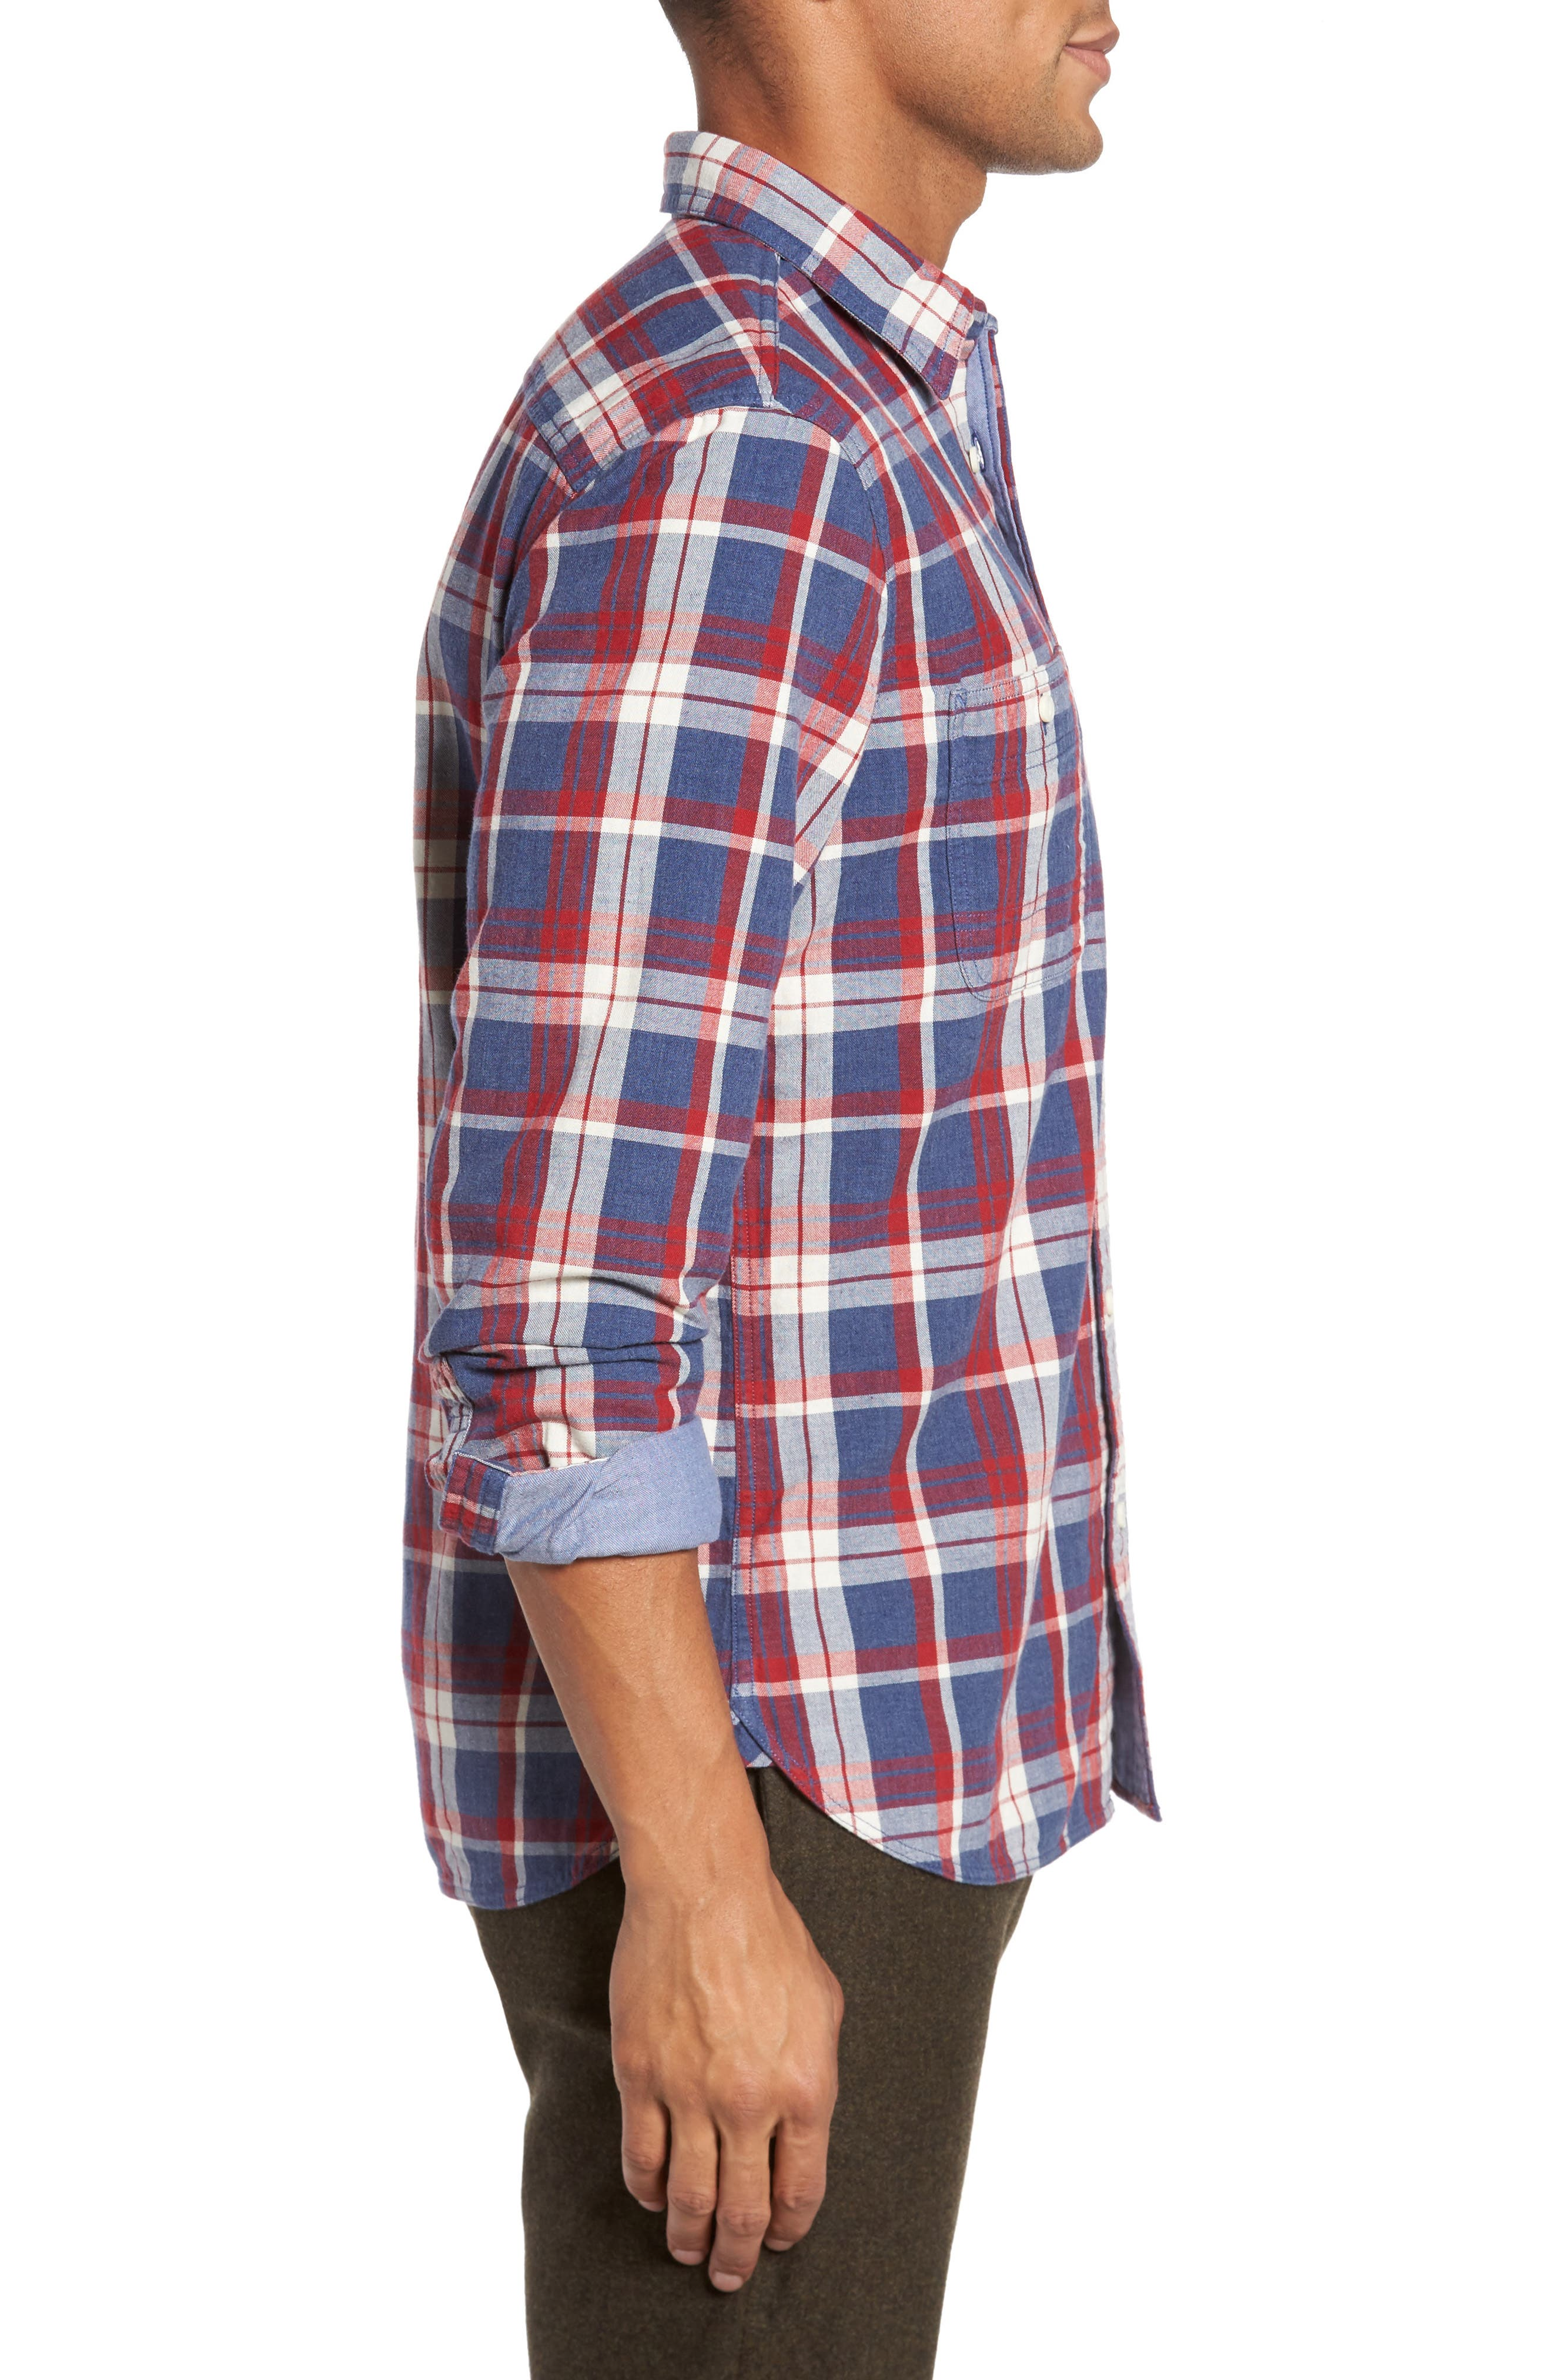 Trim Fit Workwear Duofold Plaid Sport Shirt,                             Alternate thumbnail 3, color,                             Blue Ensign Red Plaid Duofold